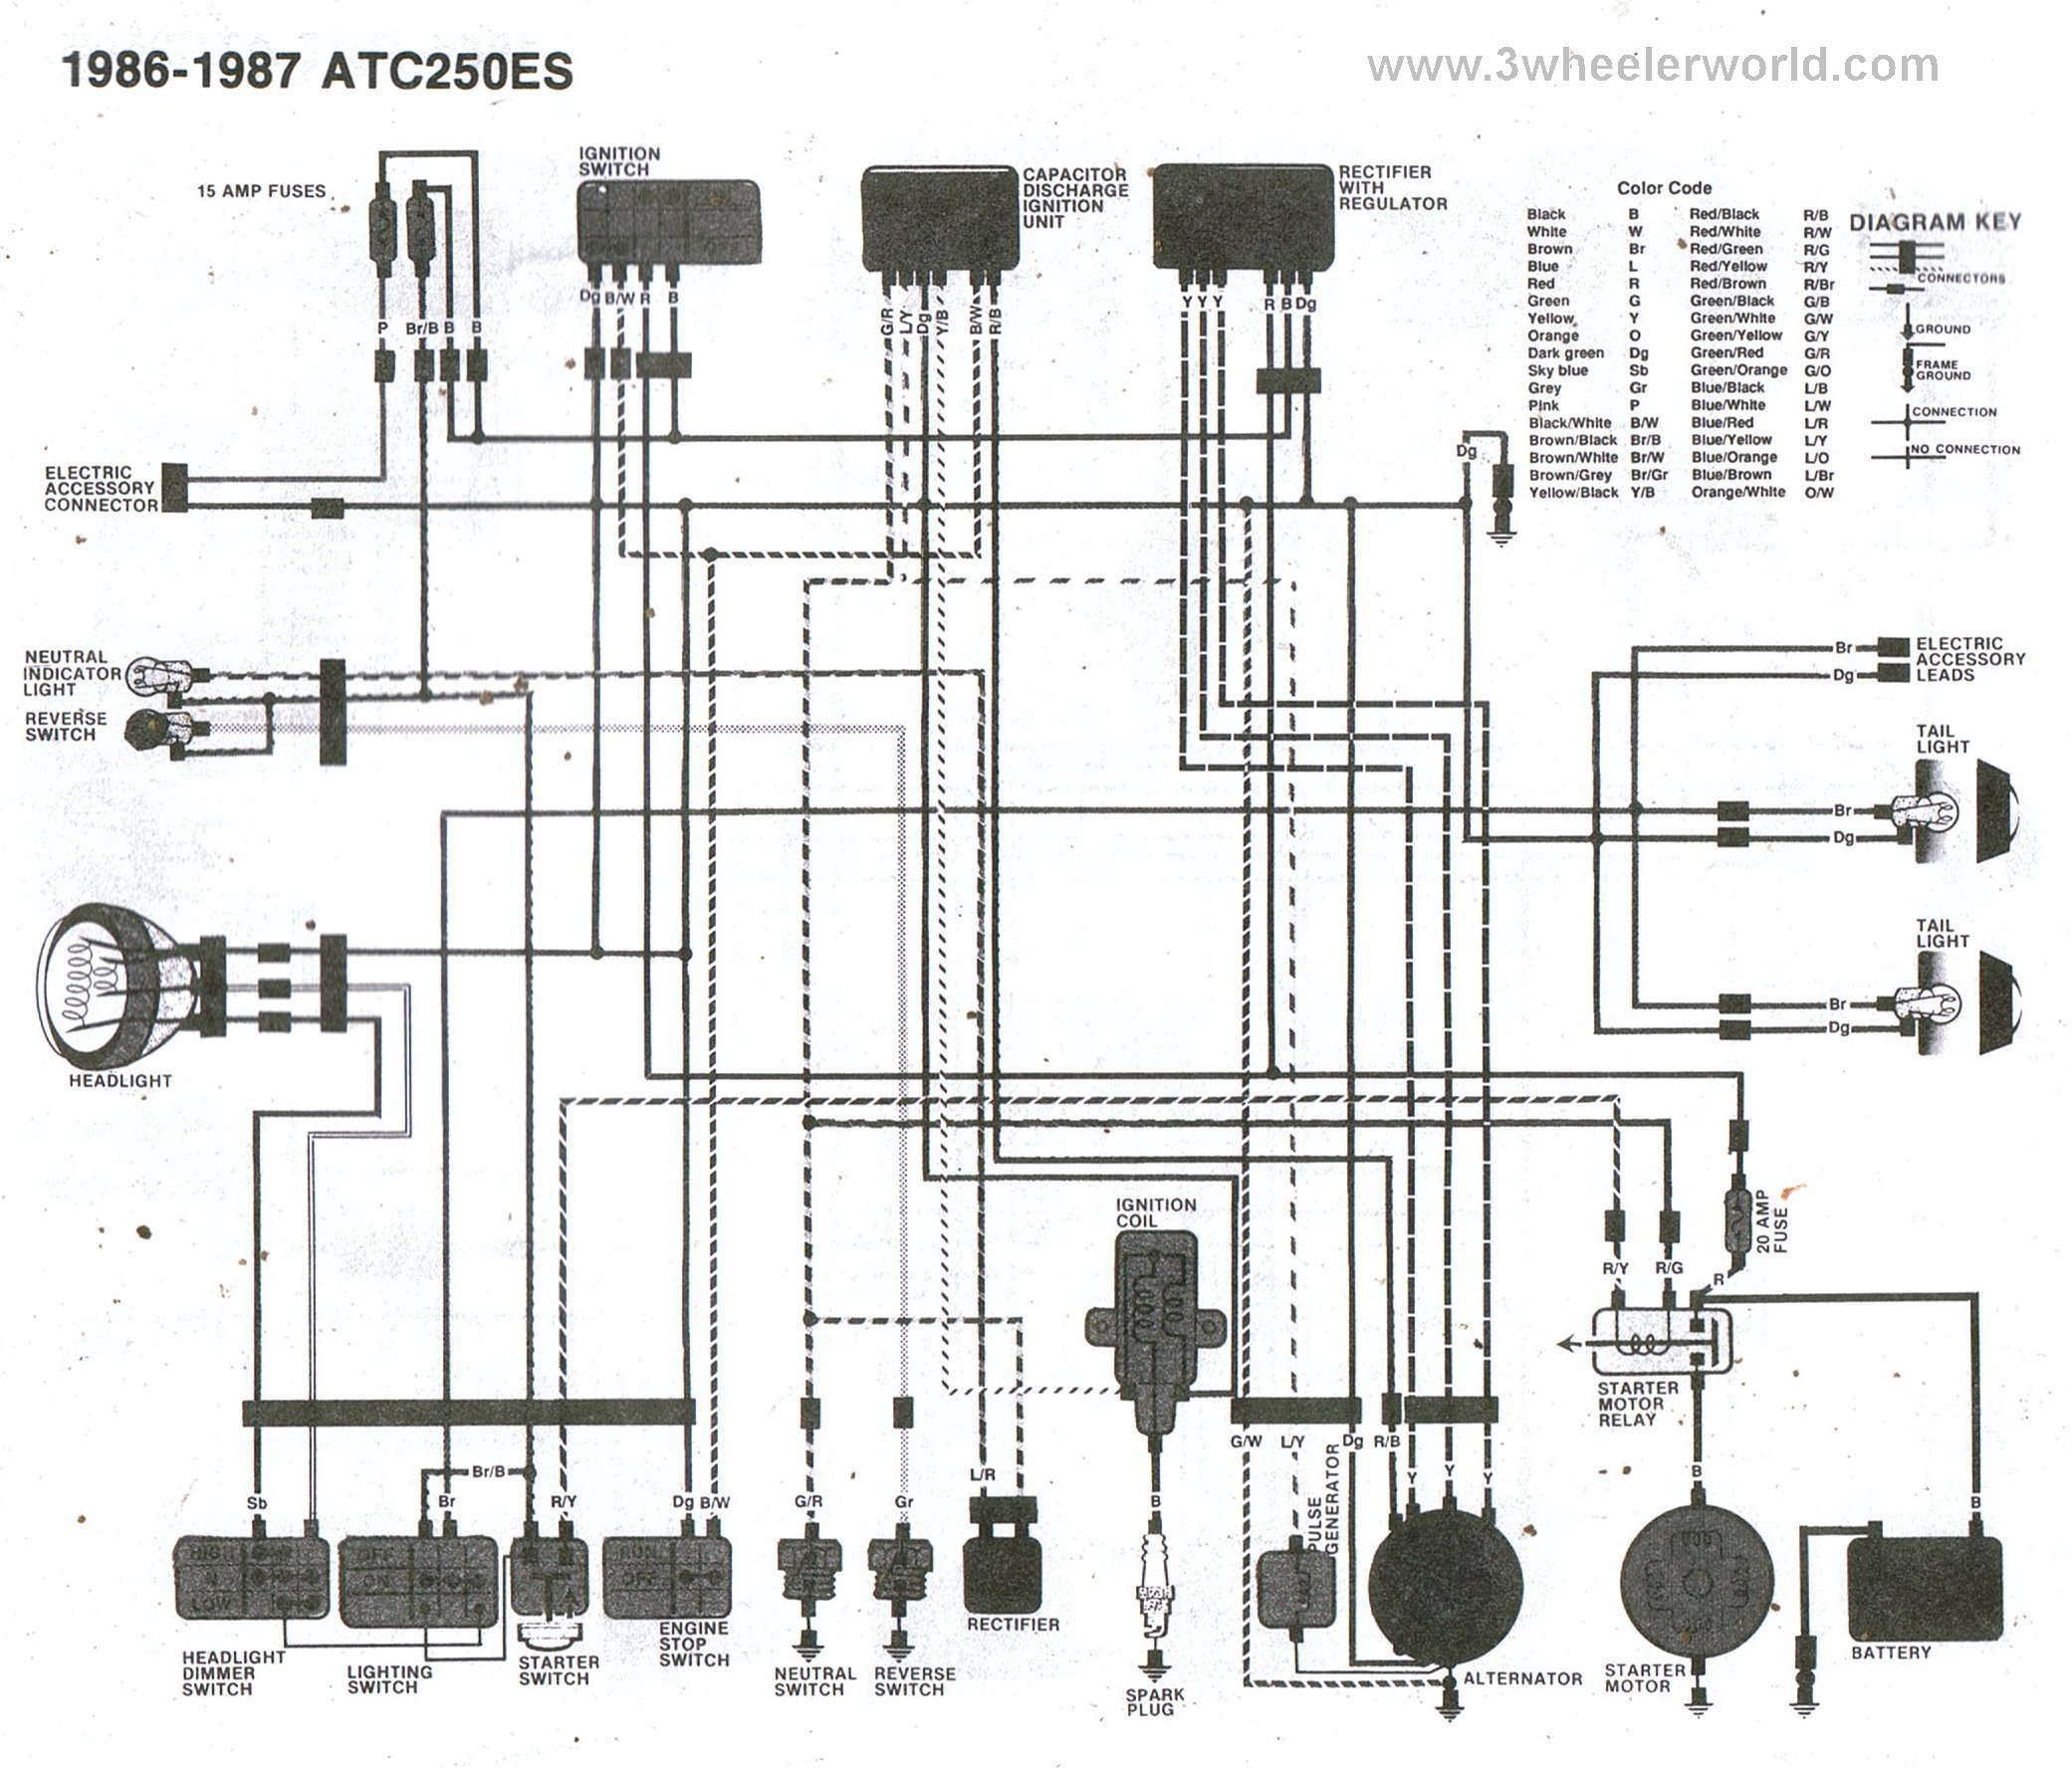 1985 Evinrude Ignition Switch Wiring Diagram. Starter